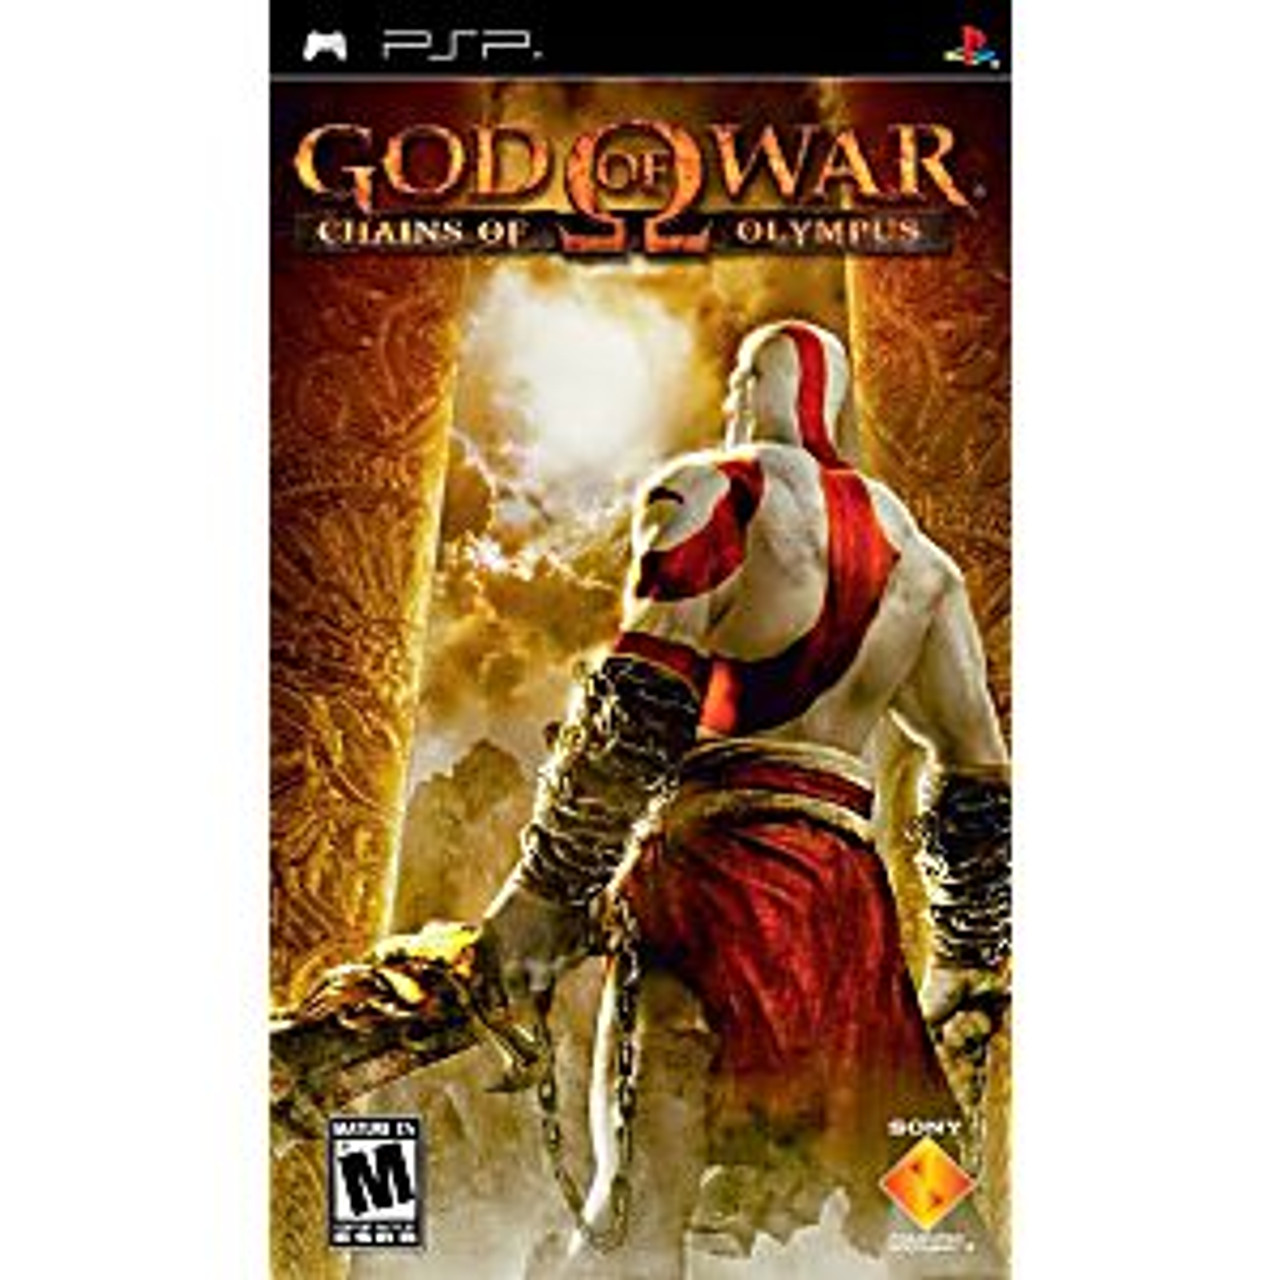 GOD OF WAR CHAINS OF OLYMPUS [M]